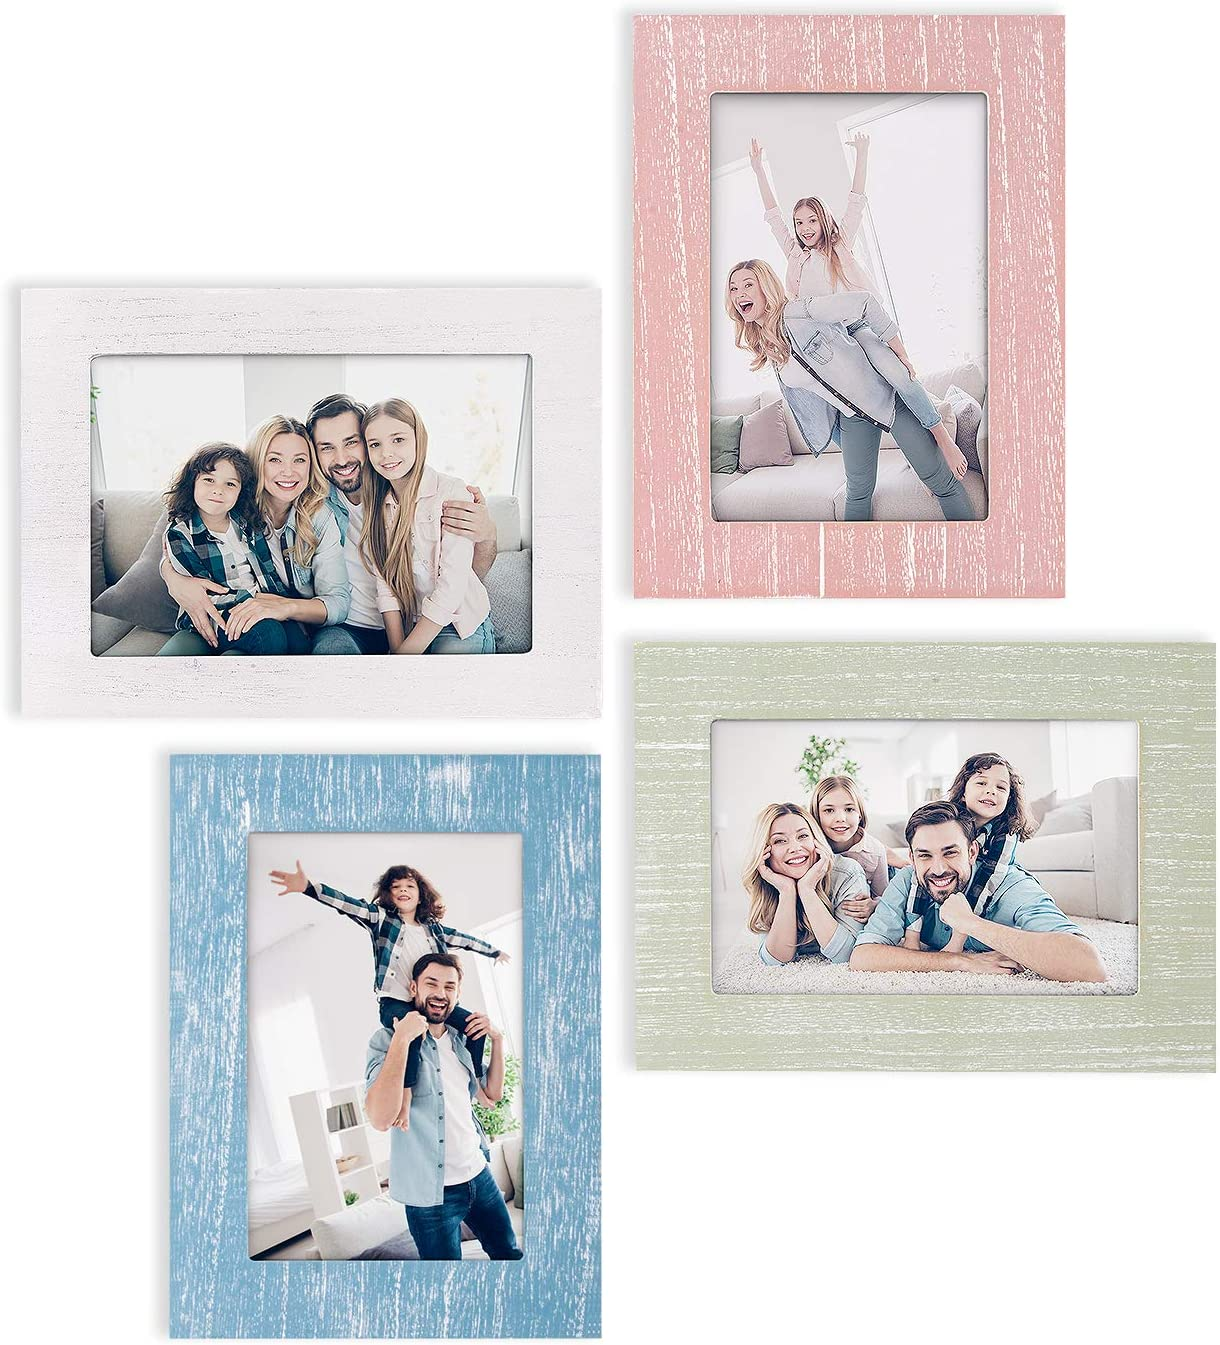 eletecpro Picture Frames 4x6 Inch Set of 4 - Wooden Designs Wall Decor Table Top & Wall Mount Photo Frames Sets for Wall - Vertical & Horizontal - Rustic Home Décor Picture Frame